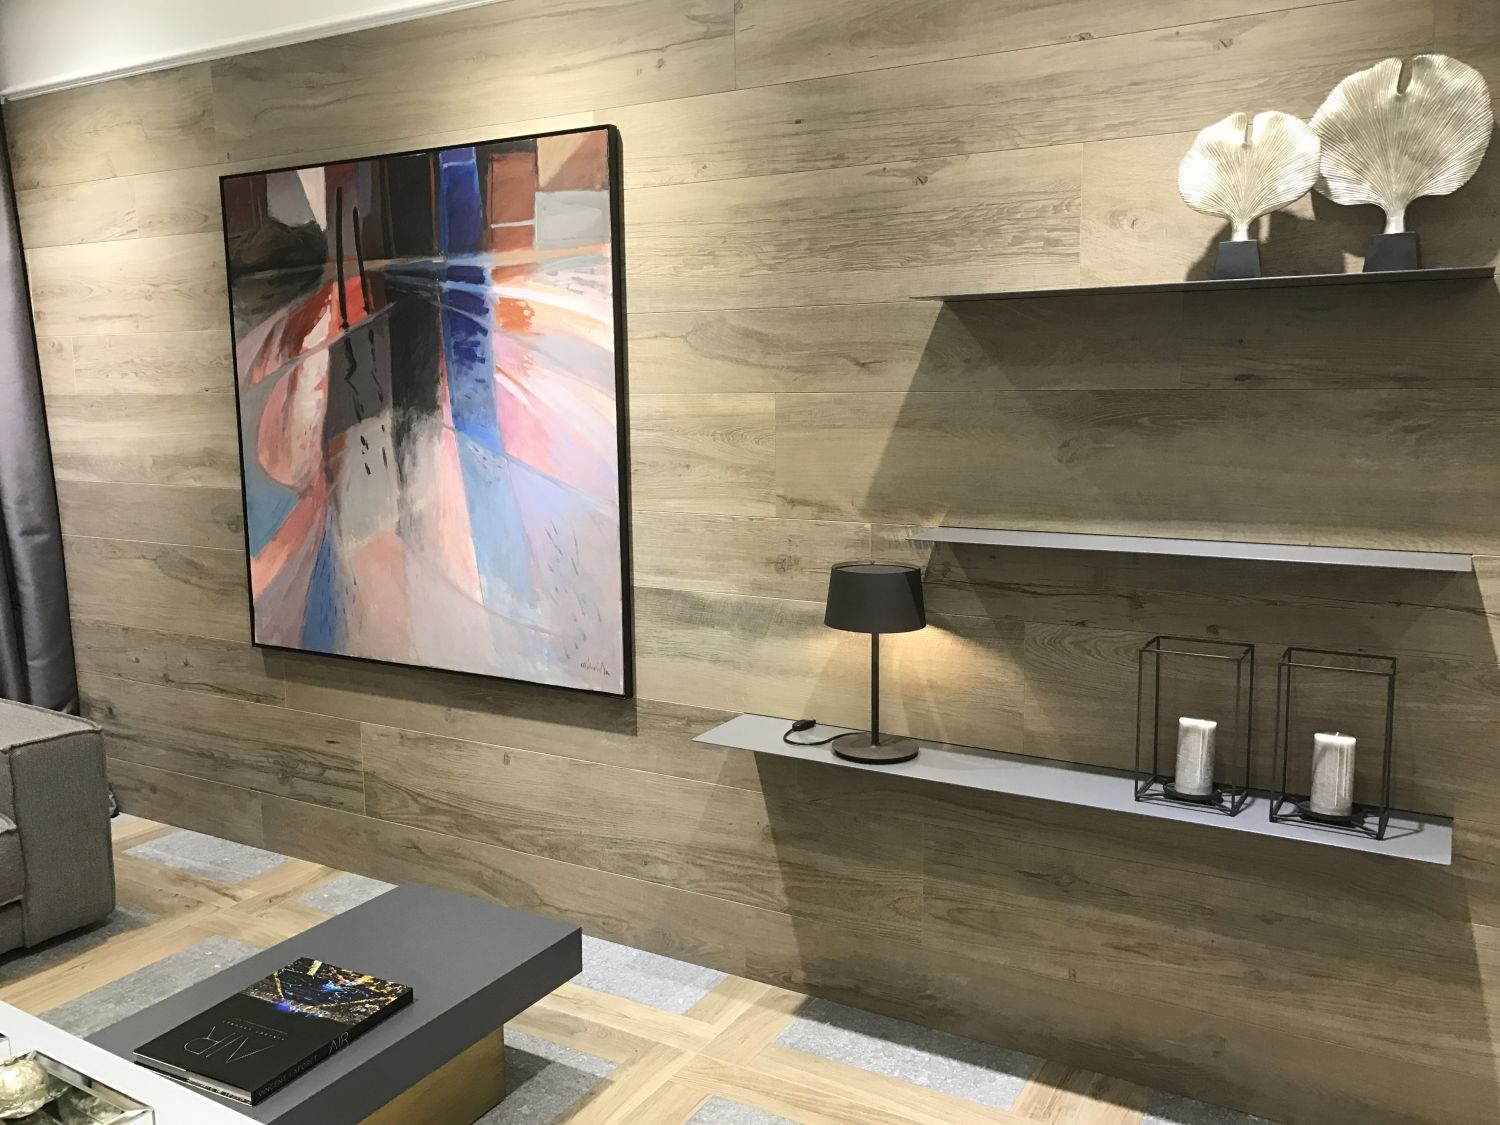 Bolonia tile by Porcelanosa mixes wood and cement look